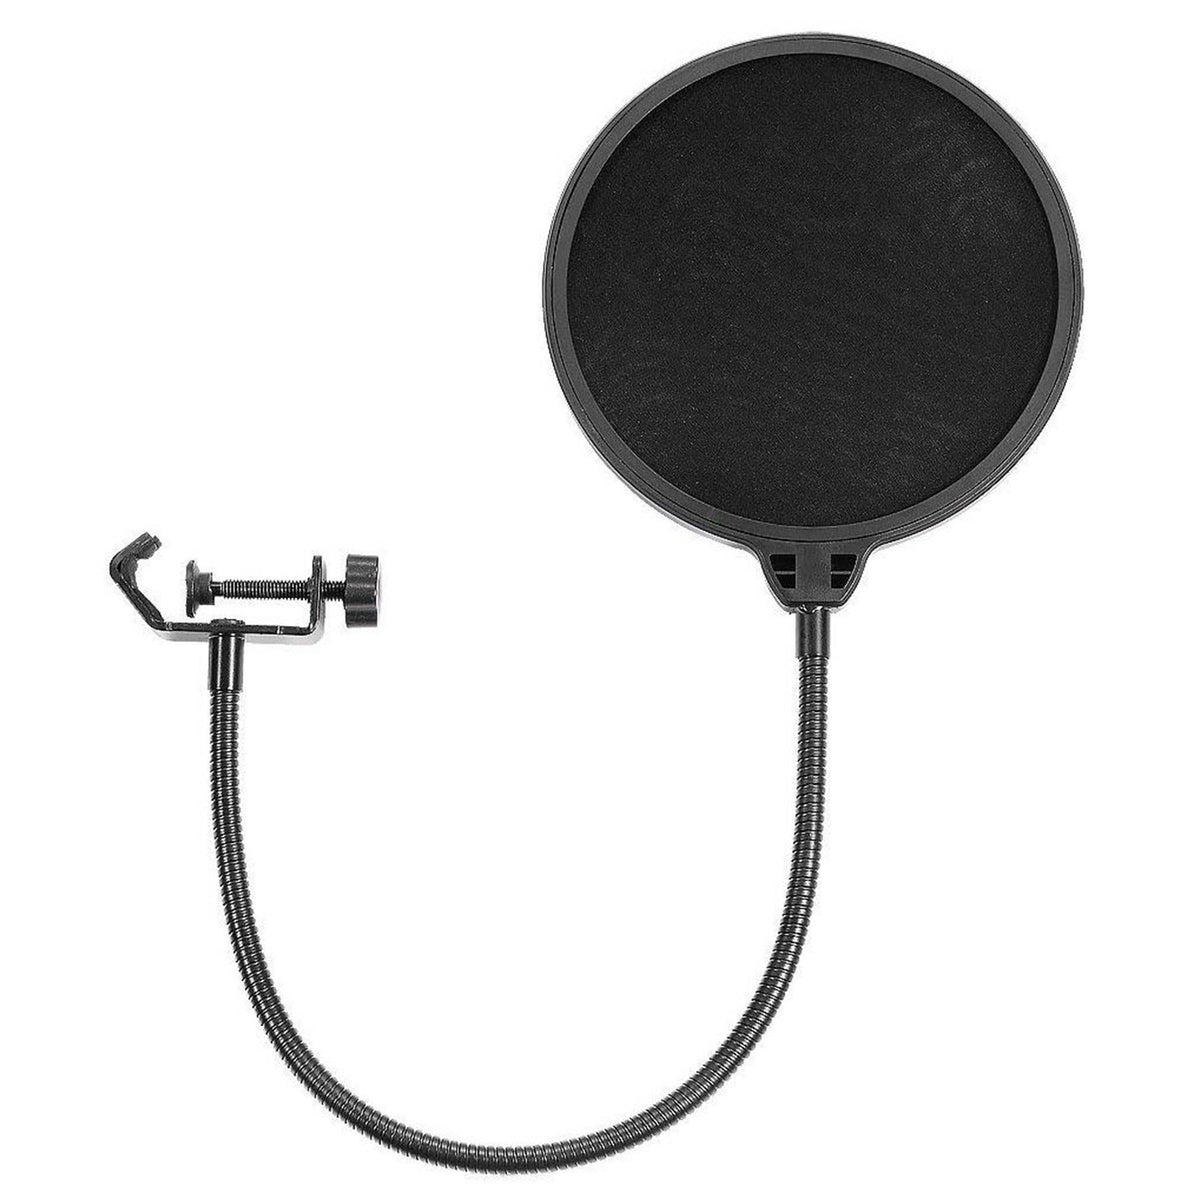 MXL R144 HE Microphone Bundle with 20-foot XLR Cable & Pop Filter